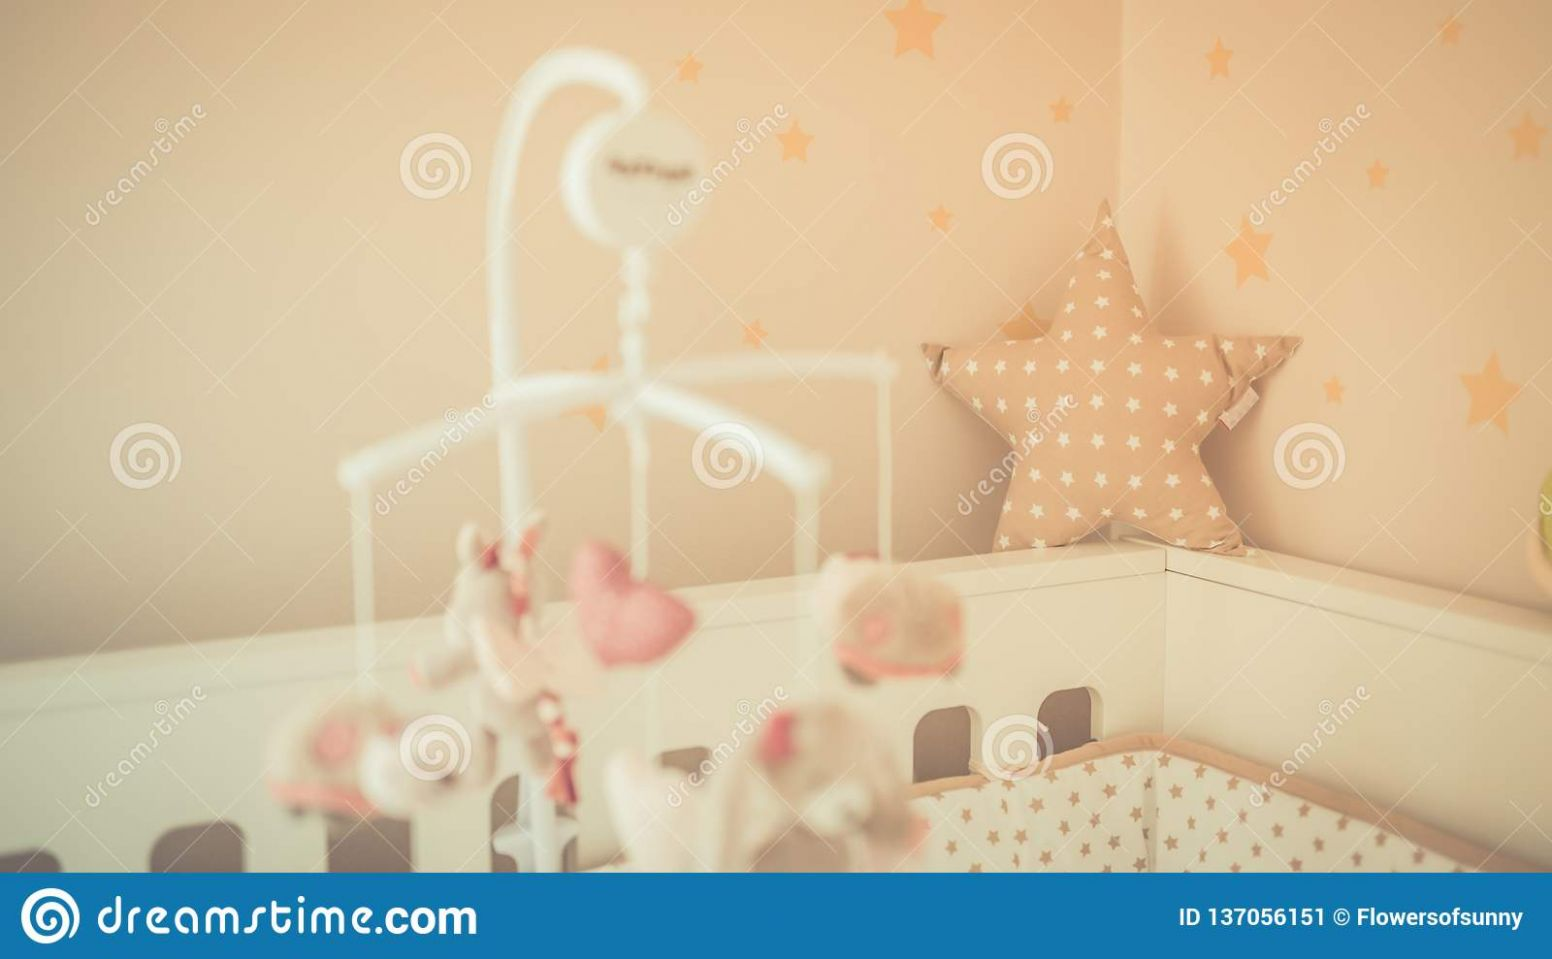 Cute Baby Room And Baby Cage Background. Details And Vintage Toned ..